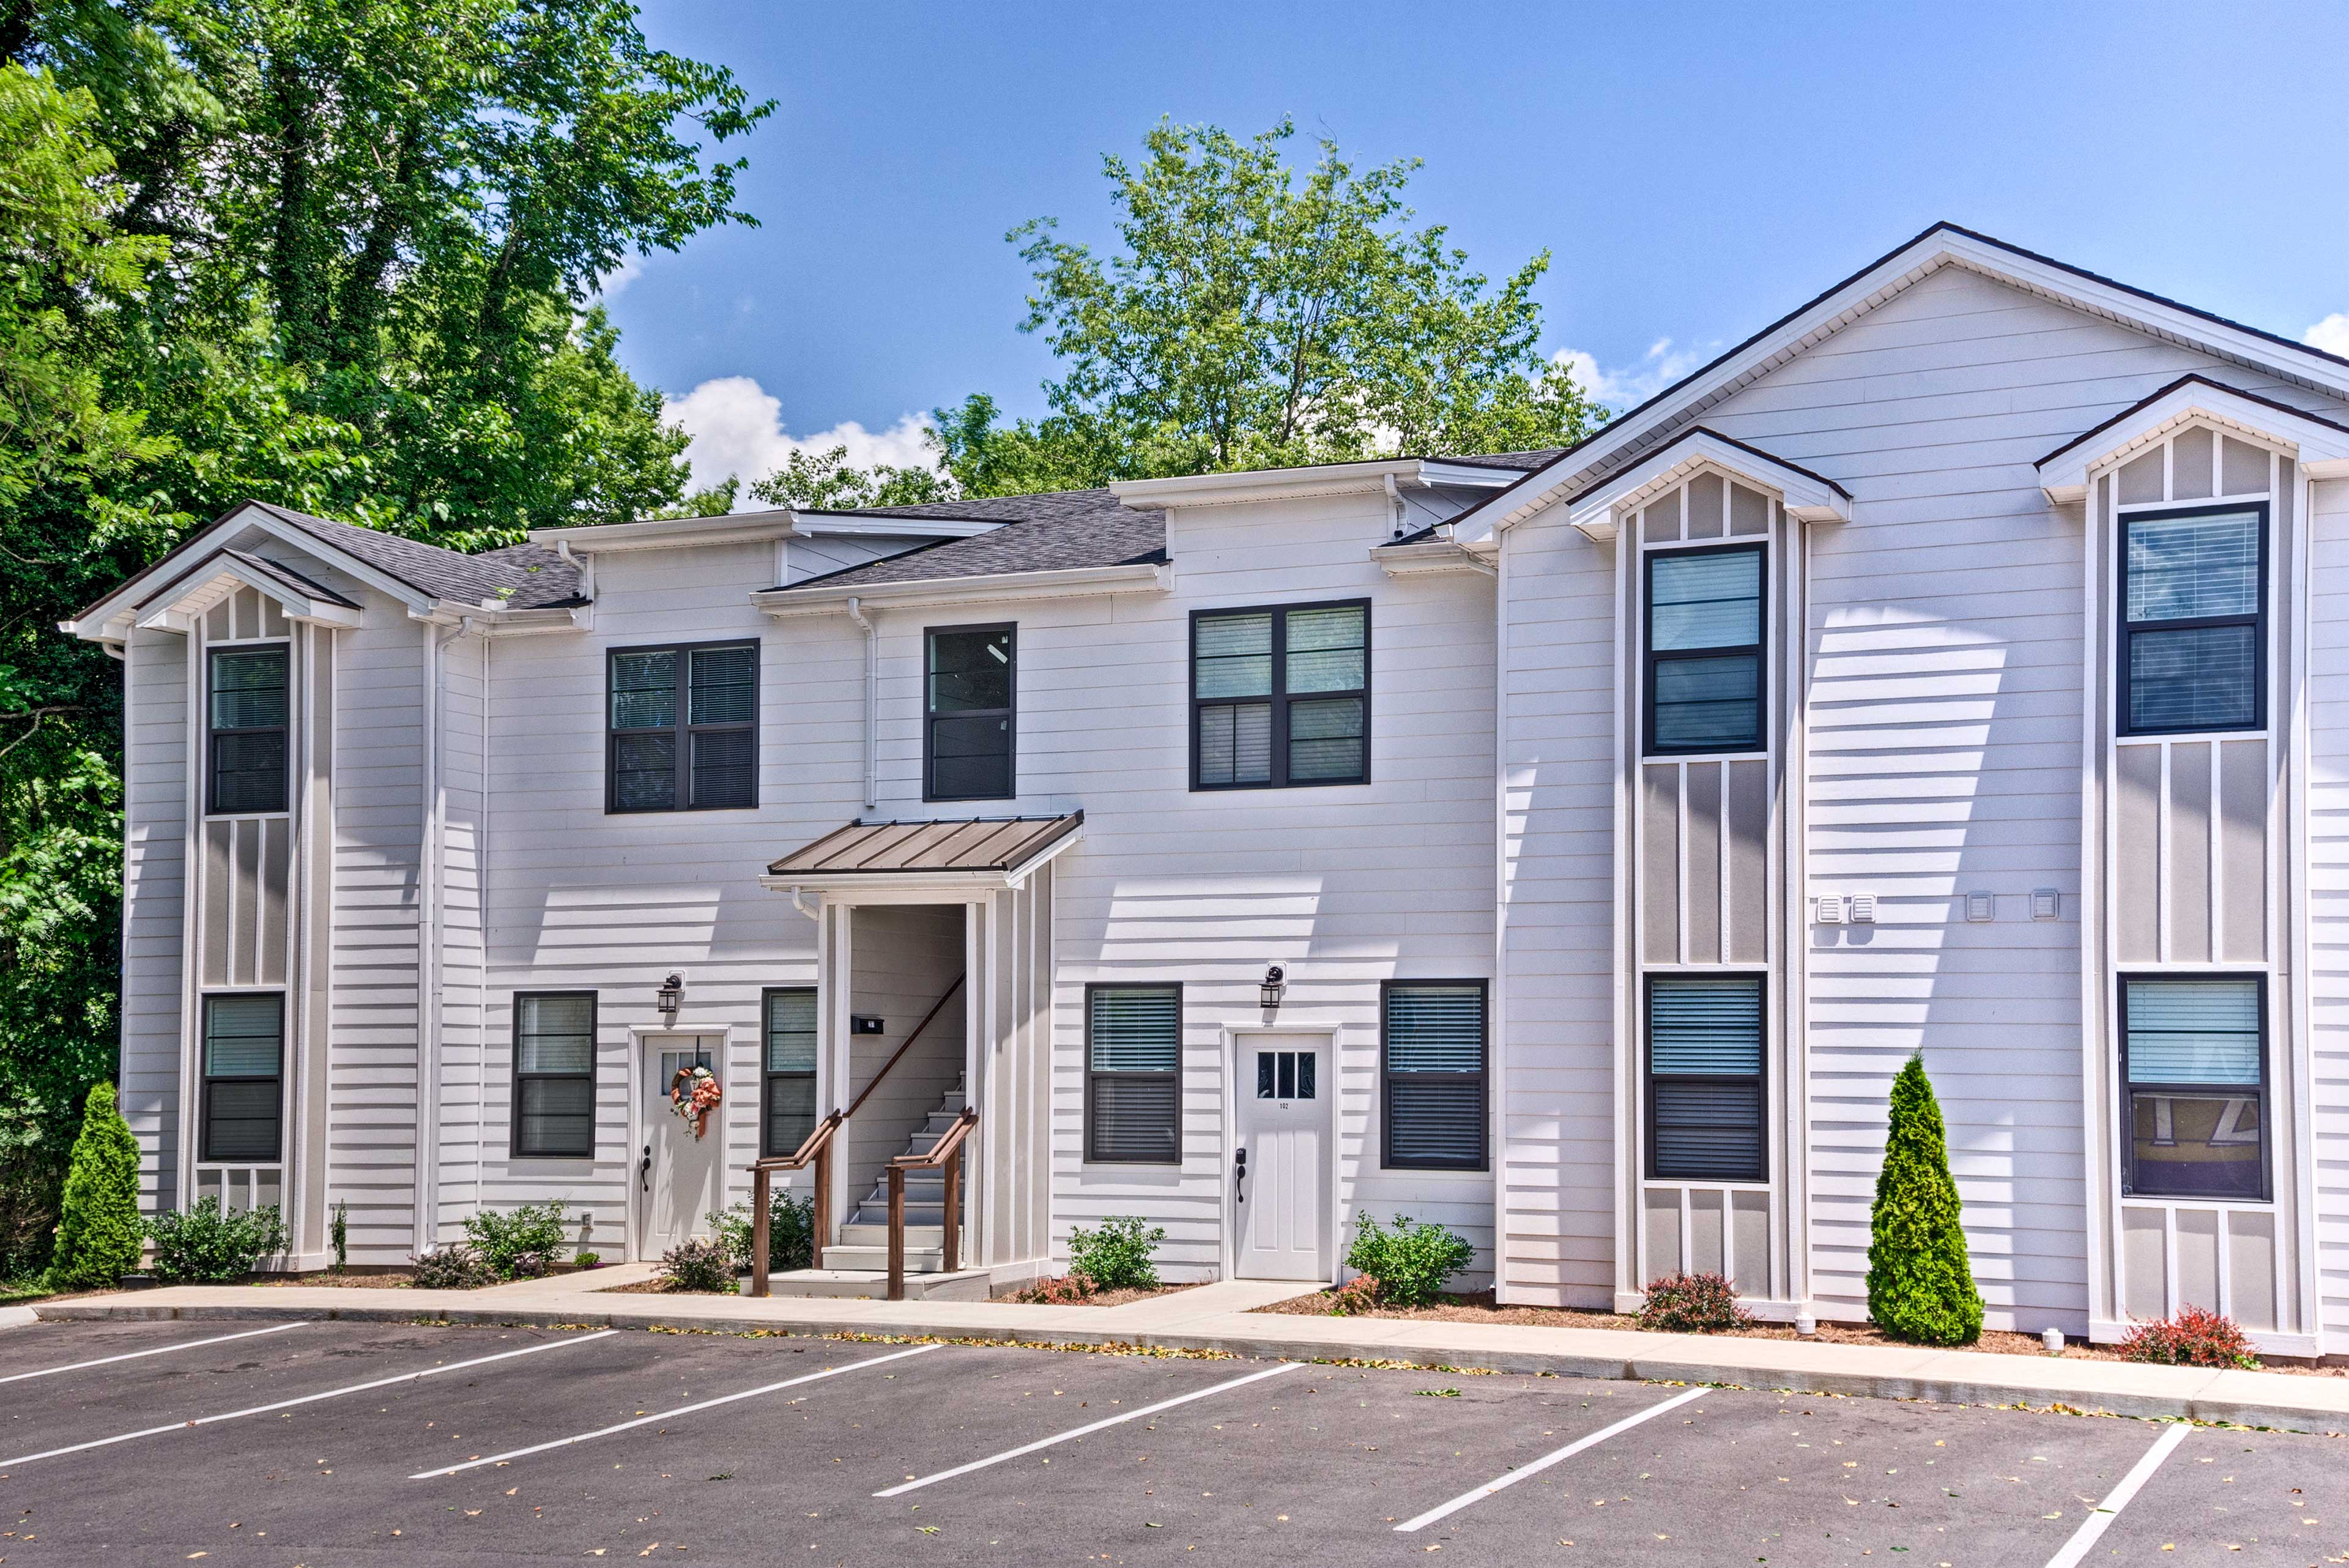 This 3-bed, 2-bath apartment offers sleeping accommodations for 8!